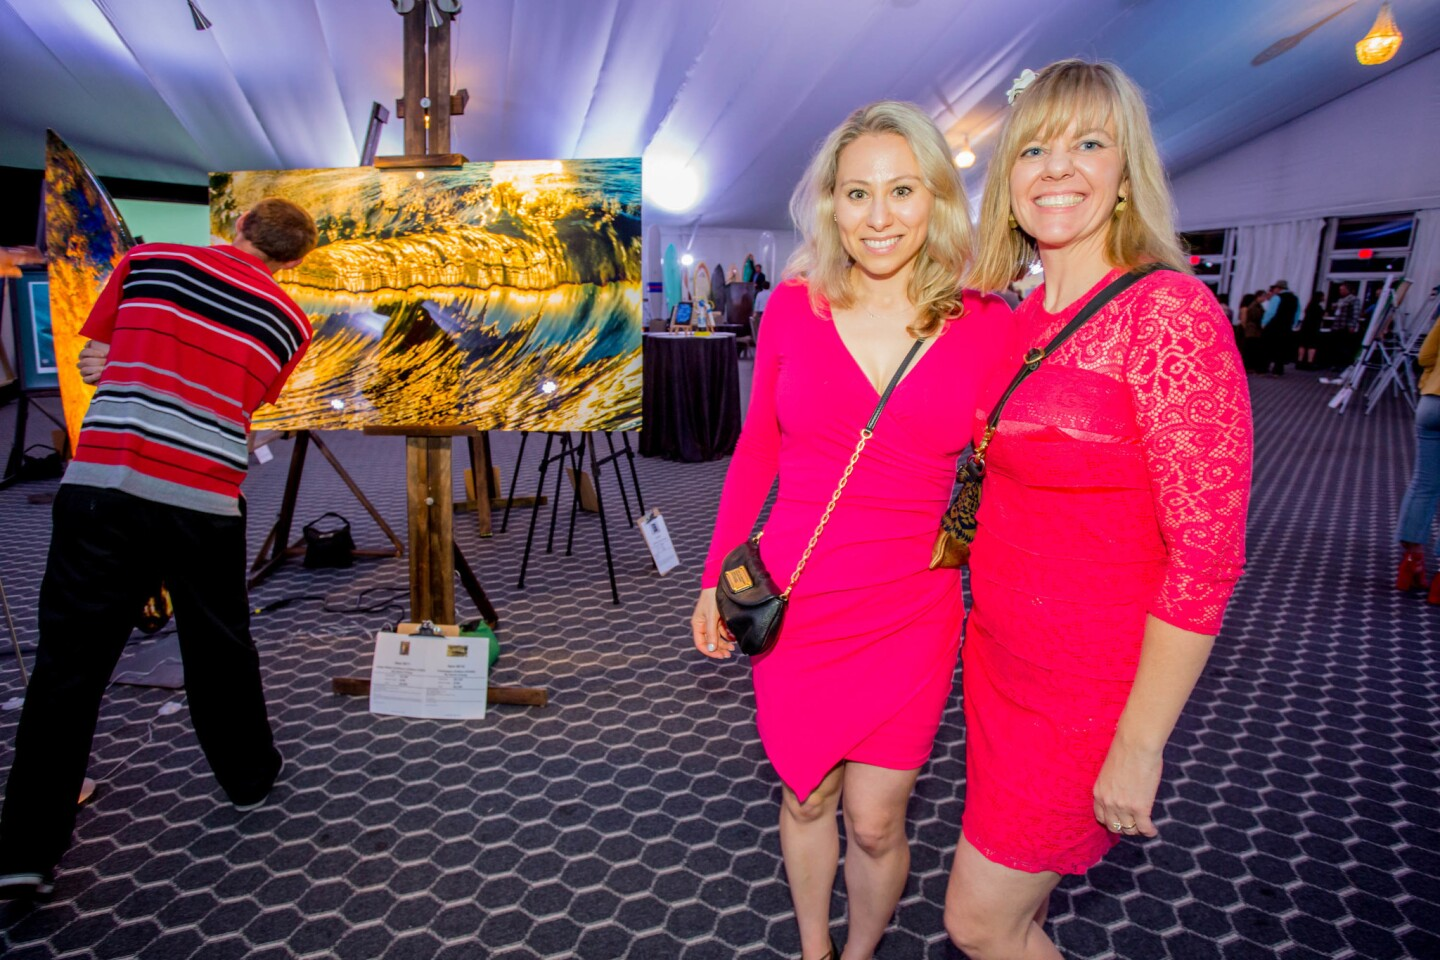 Clean oceans and waterways were top of mind as hundreds turned out for the Surfrider 17th annual Art Gala & Auction on May 12, 2017 at Paradise Point Resort at Mission Bay. (Bradley Schweit)